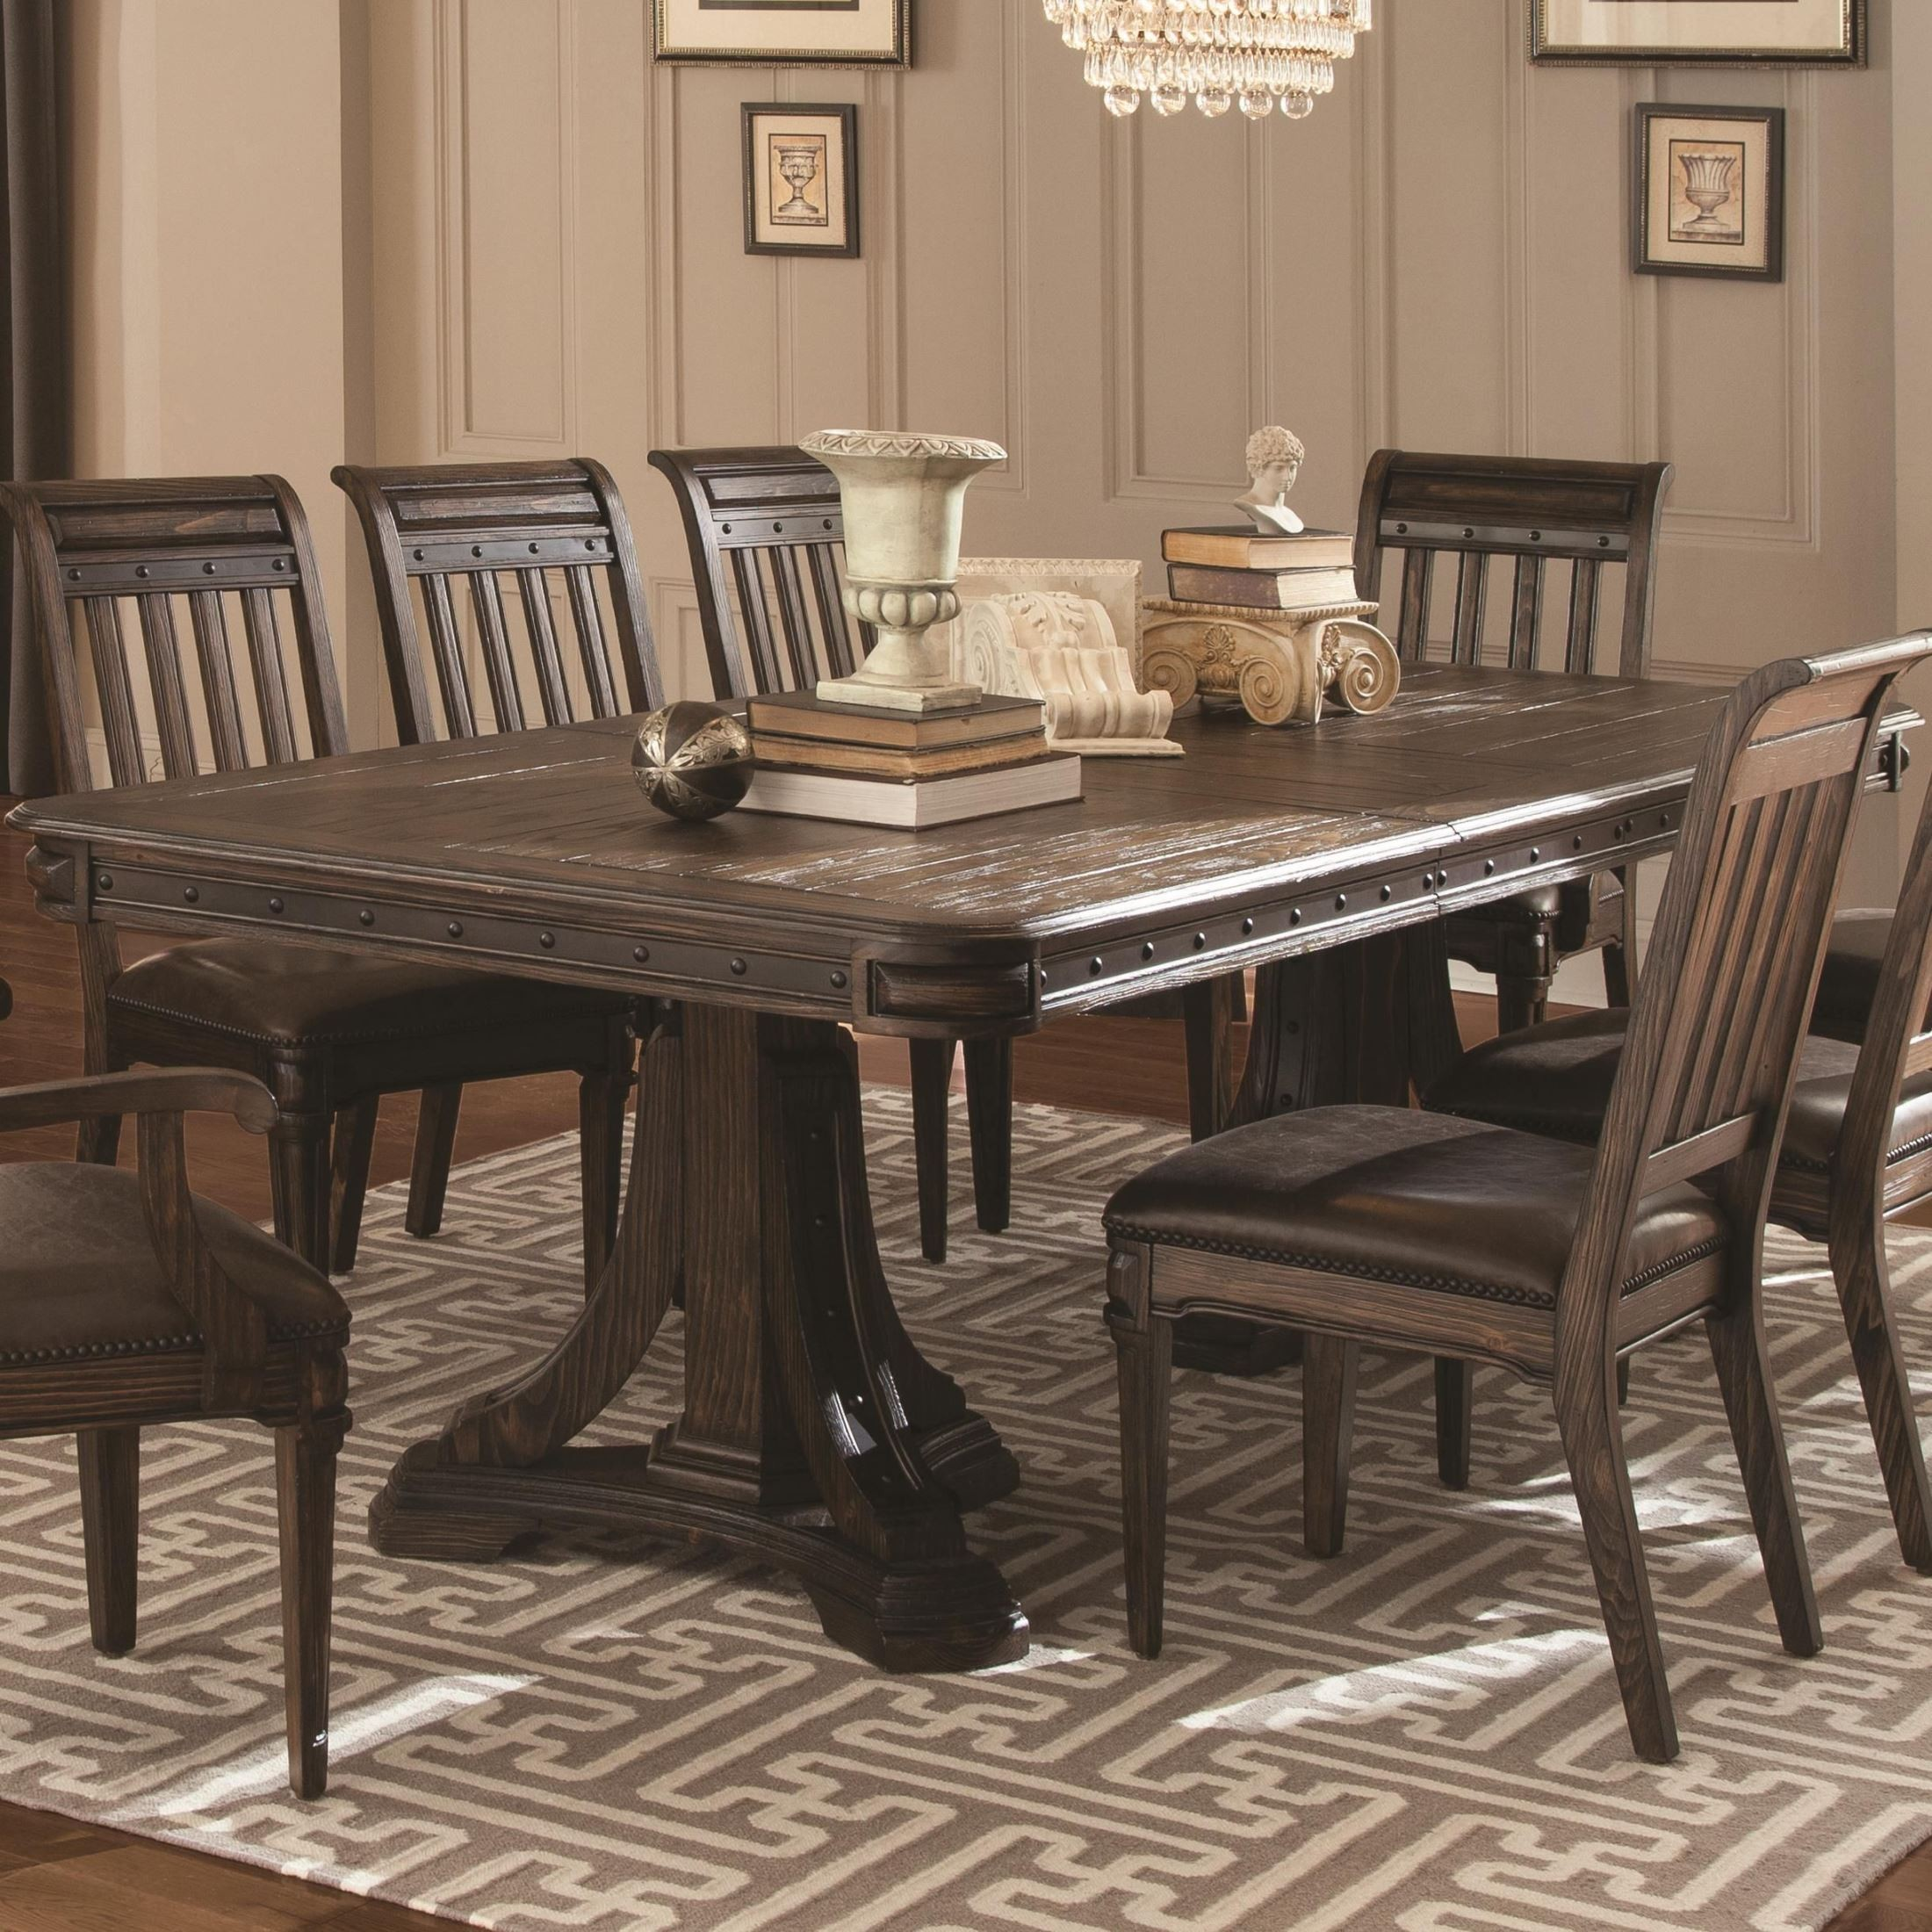 Rectangular Extendable Dining Table: Carlsbad Dark Brown Rectangular Extendable Dining Table